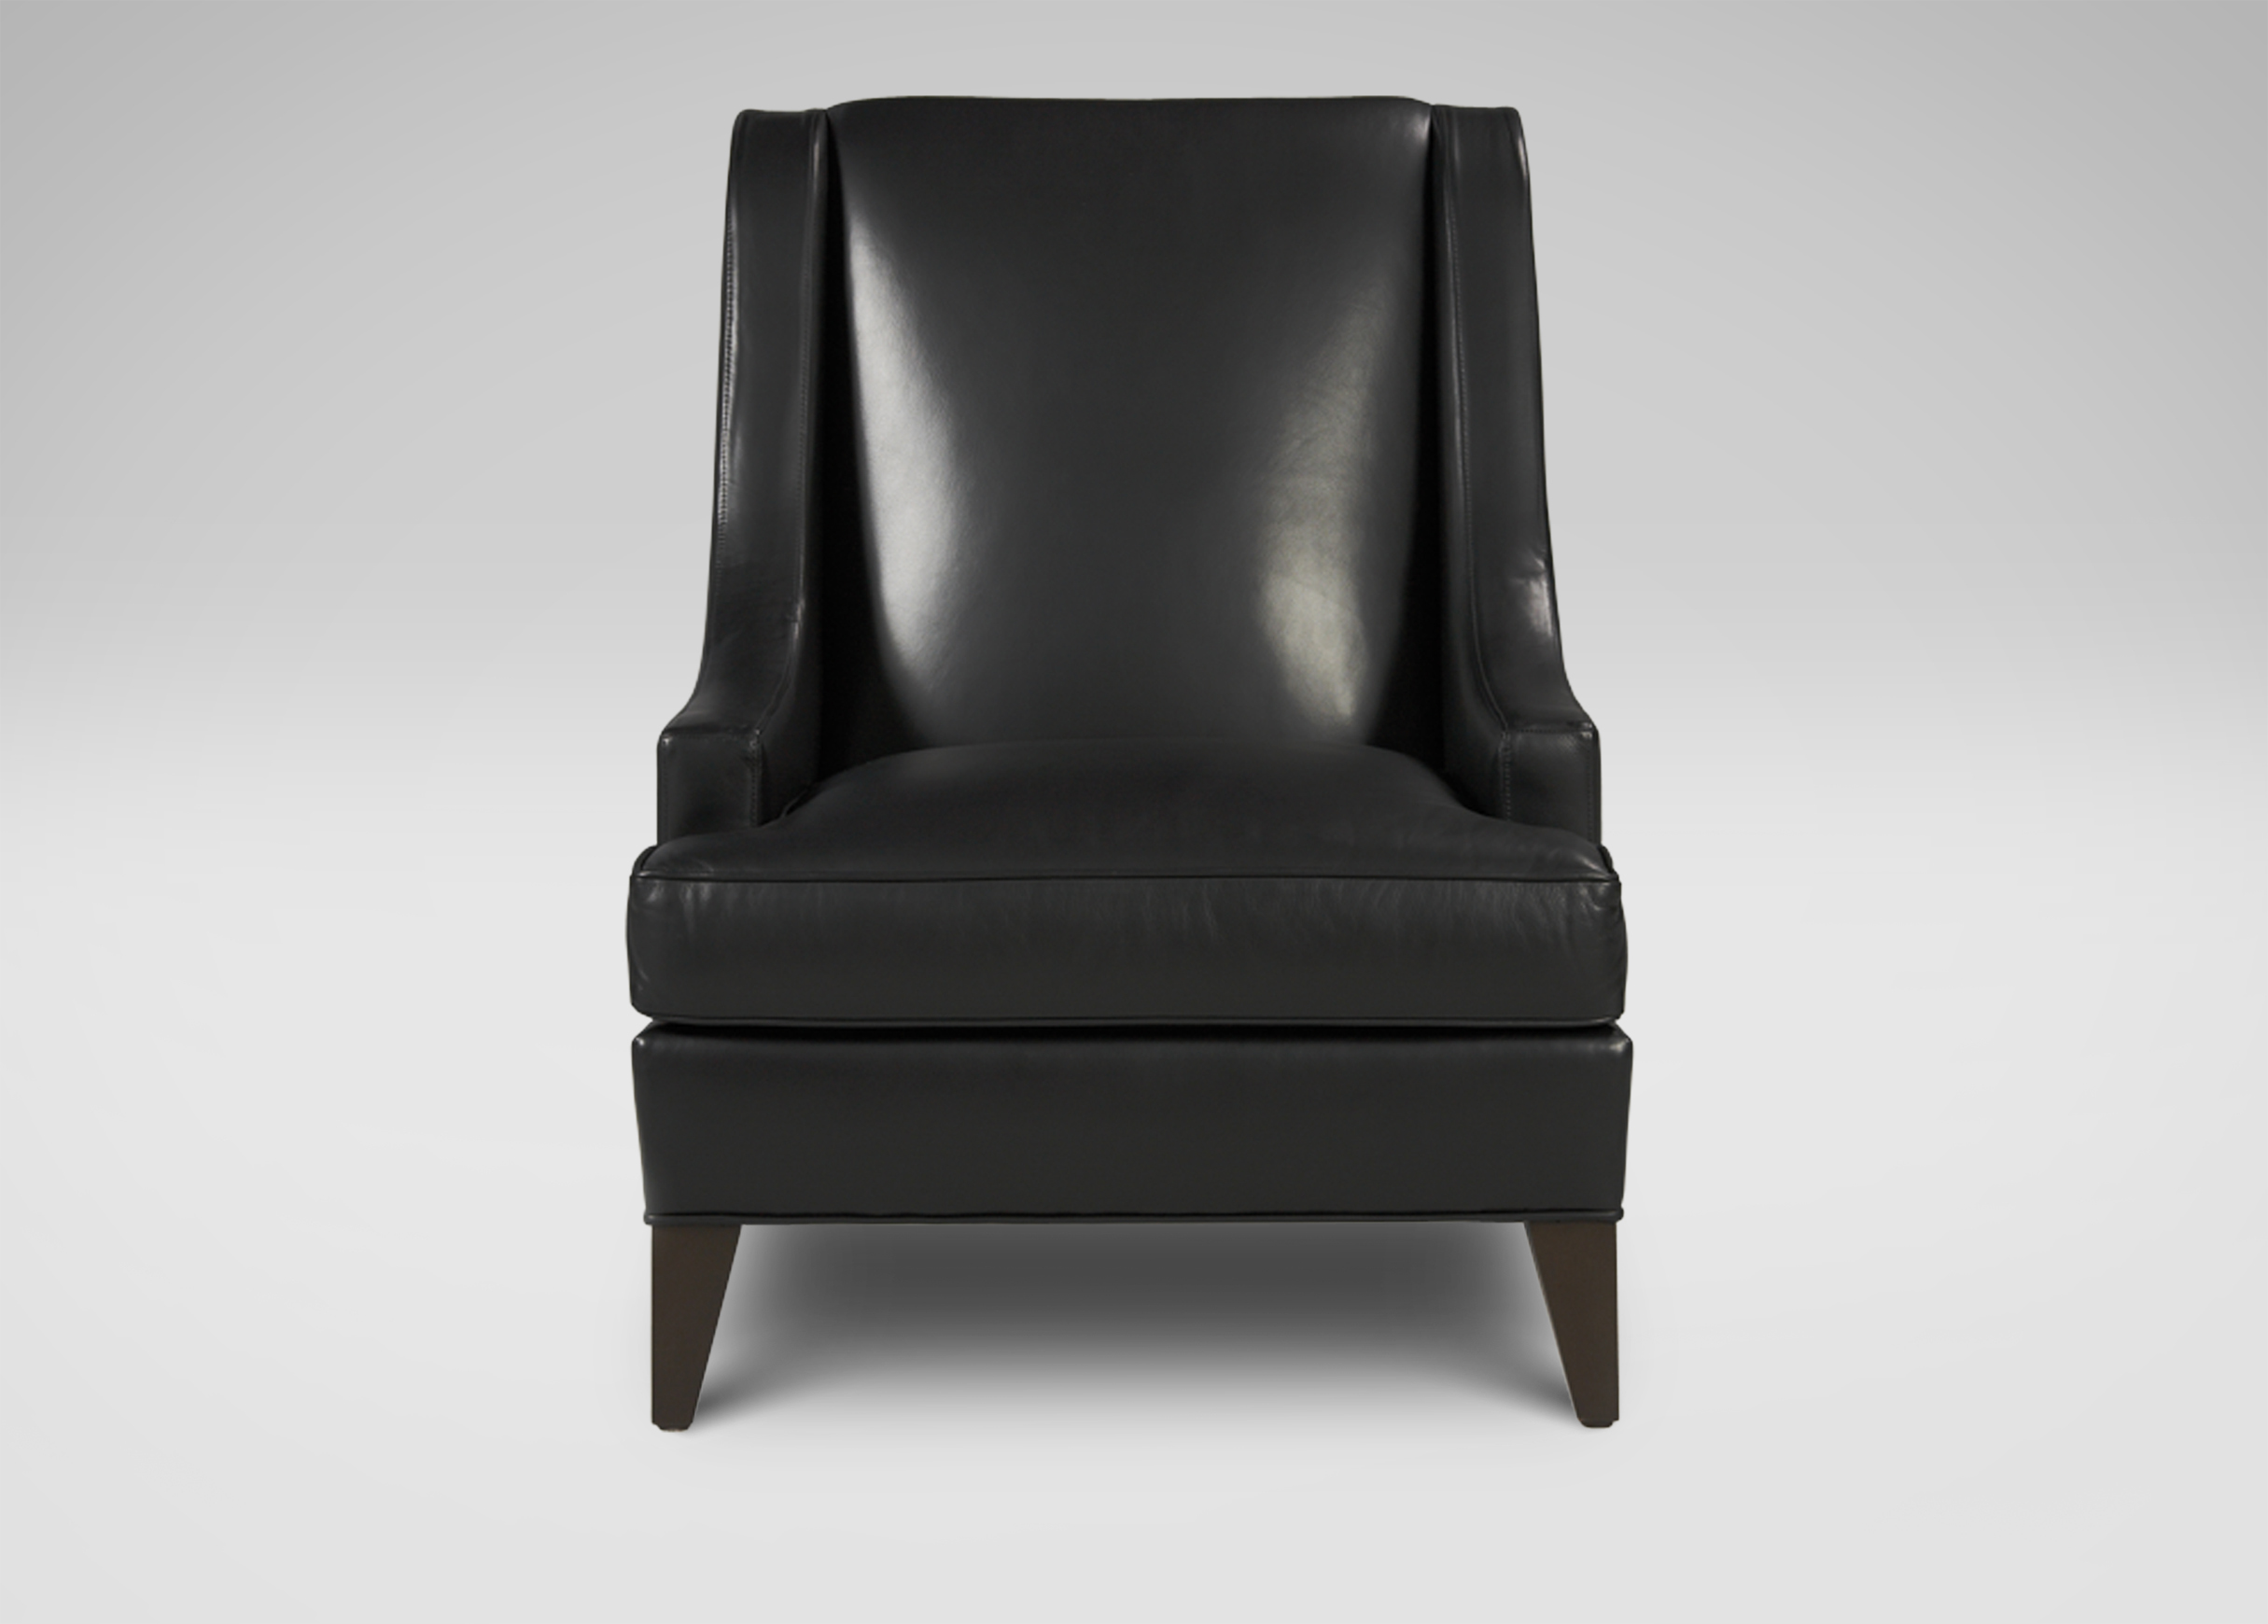 Ethan Allen Furniture Accent Chairs Html : 72 7531945L4156FRONT from chairs52.com size 2430 x 1740 jpeg 715kB